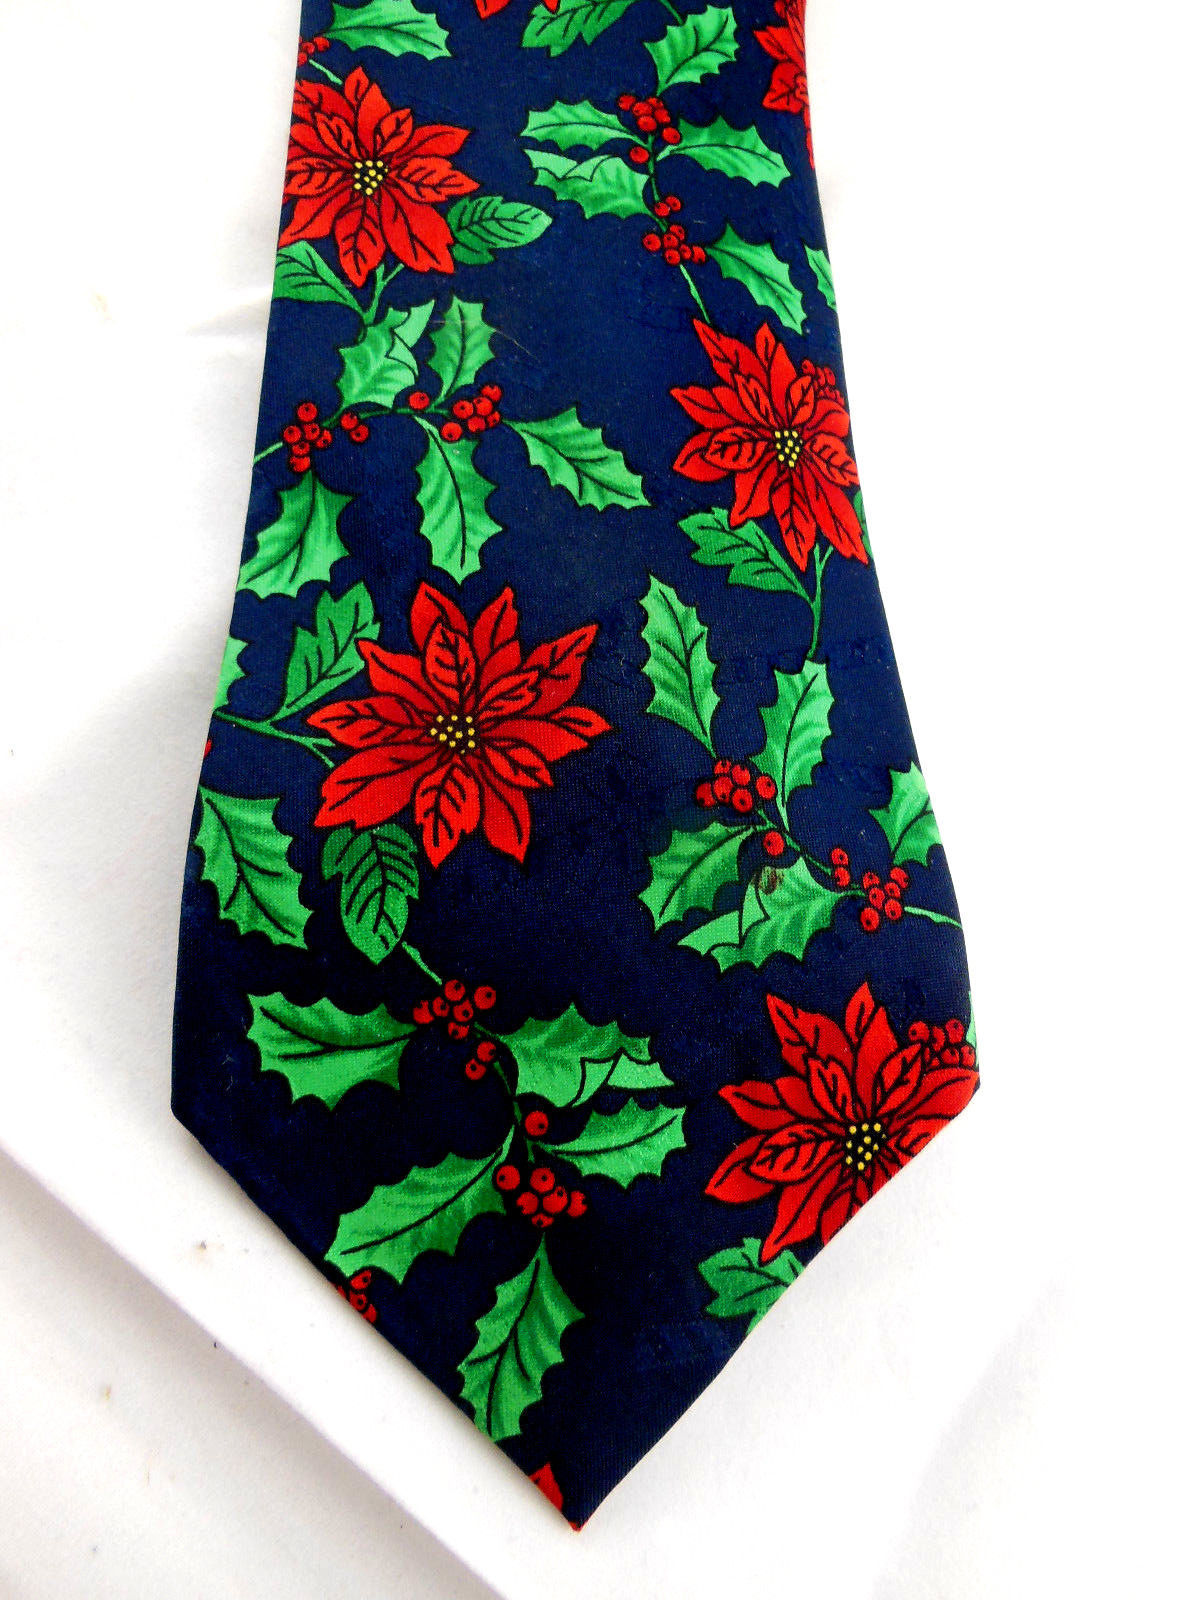 Christmas Holiday Poinsettia and holly Necktie Tie by Hallmark